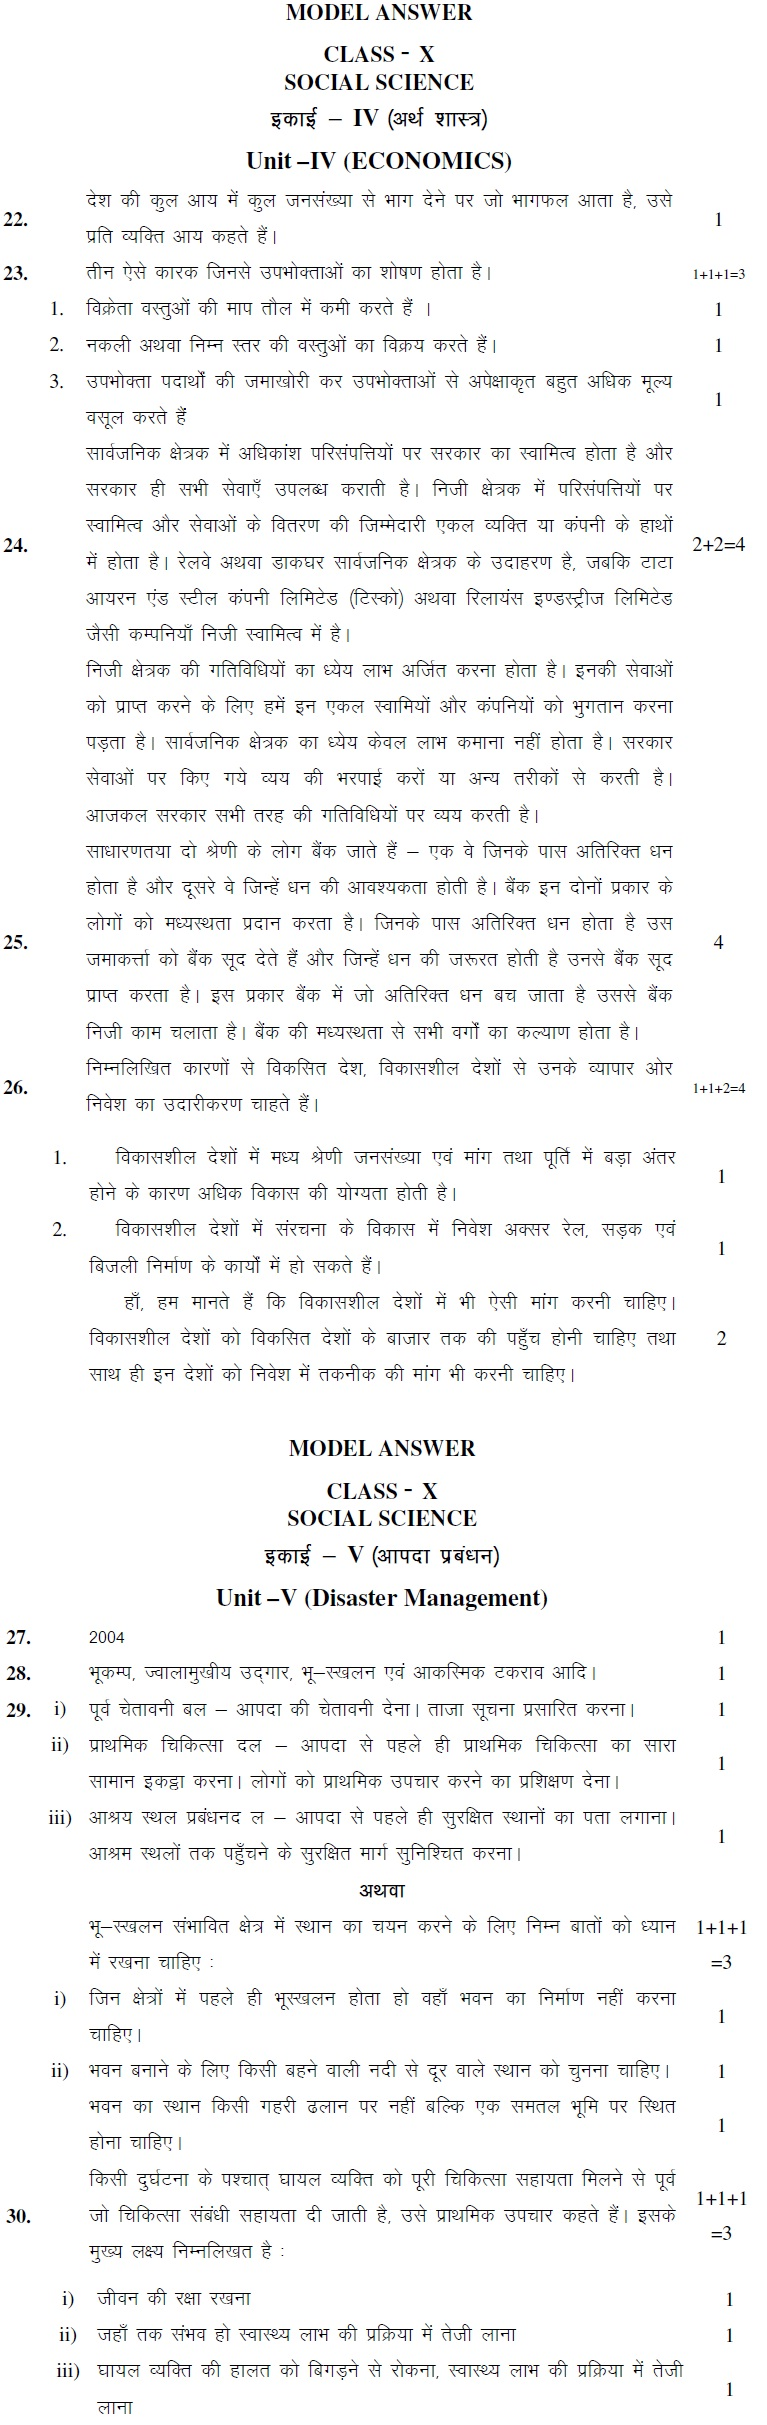 Jharkhand Board Class X Sample Papers - SOCIAL SCIENCE